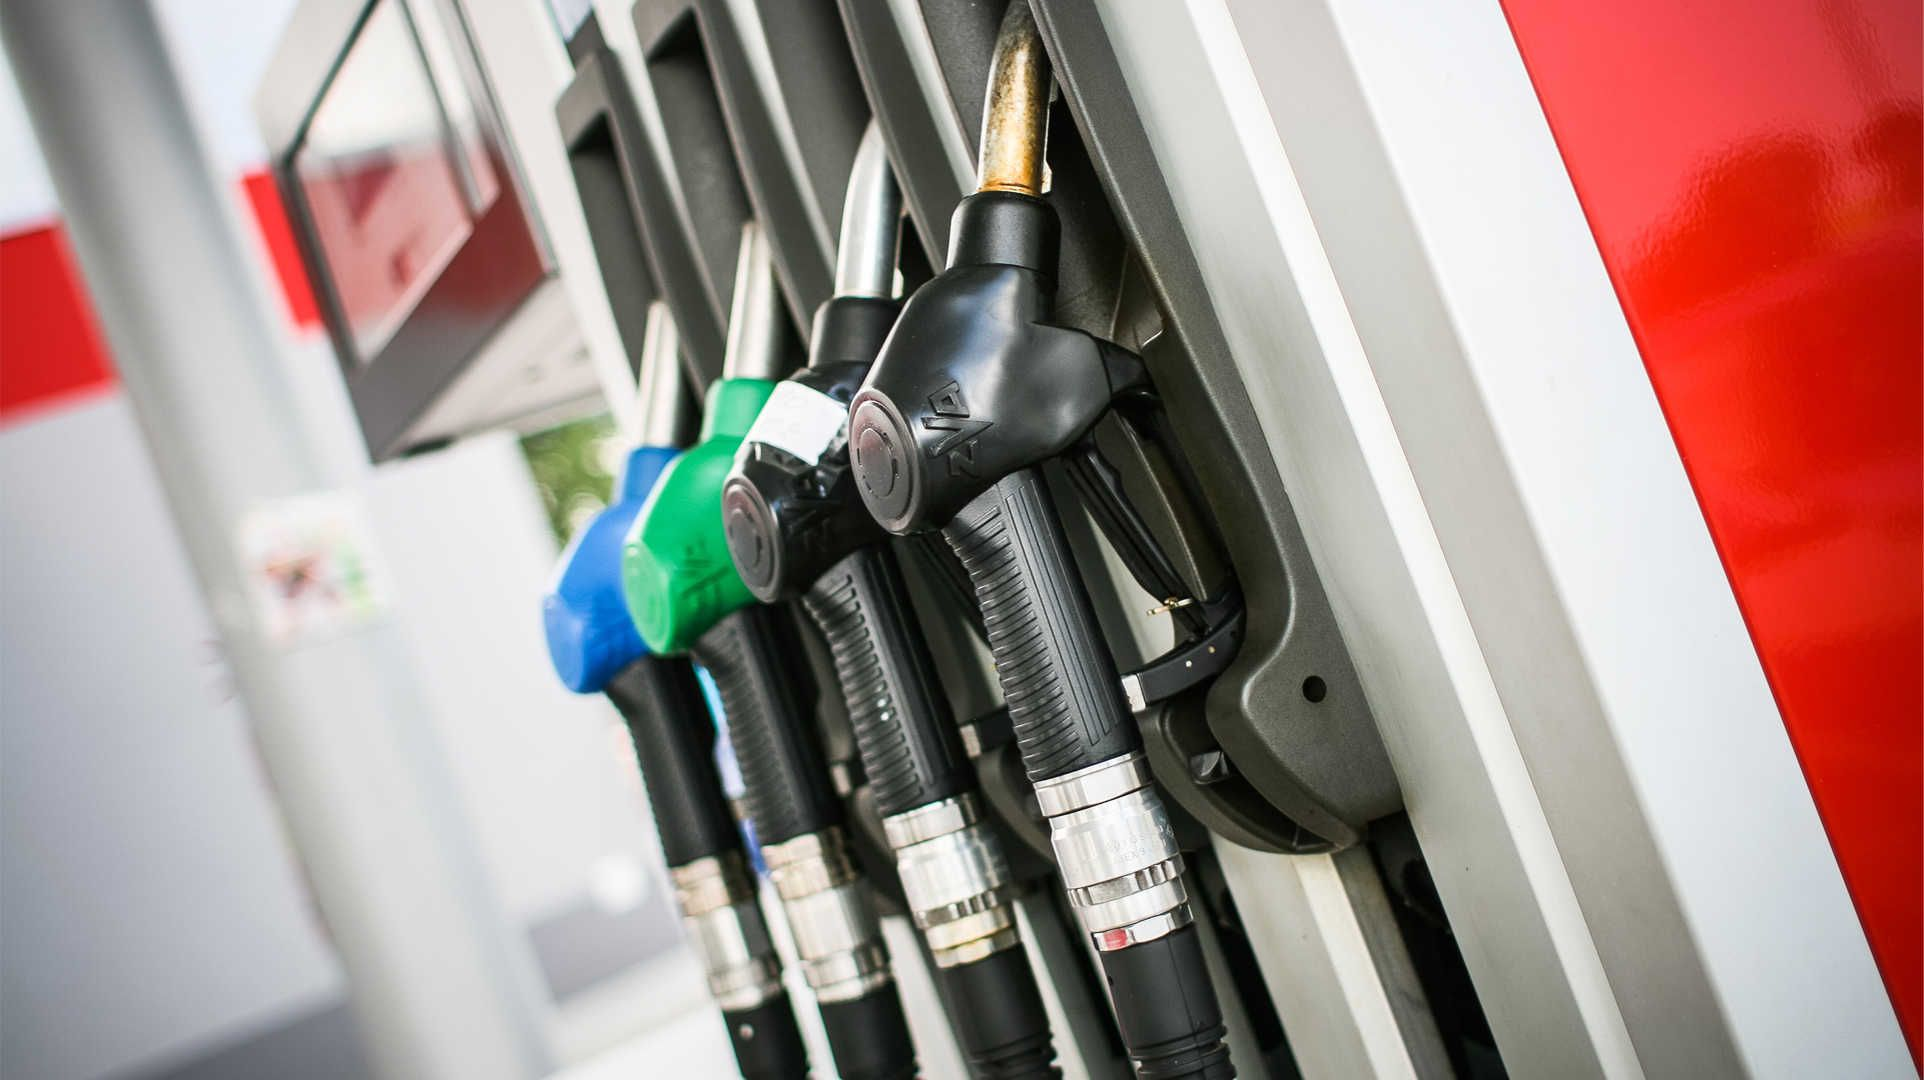 Fuel Near Me >> Gas Station Near Me Hd Wallpaper Wallpapers Fuel Prices